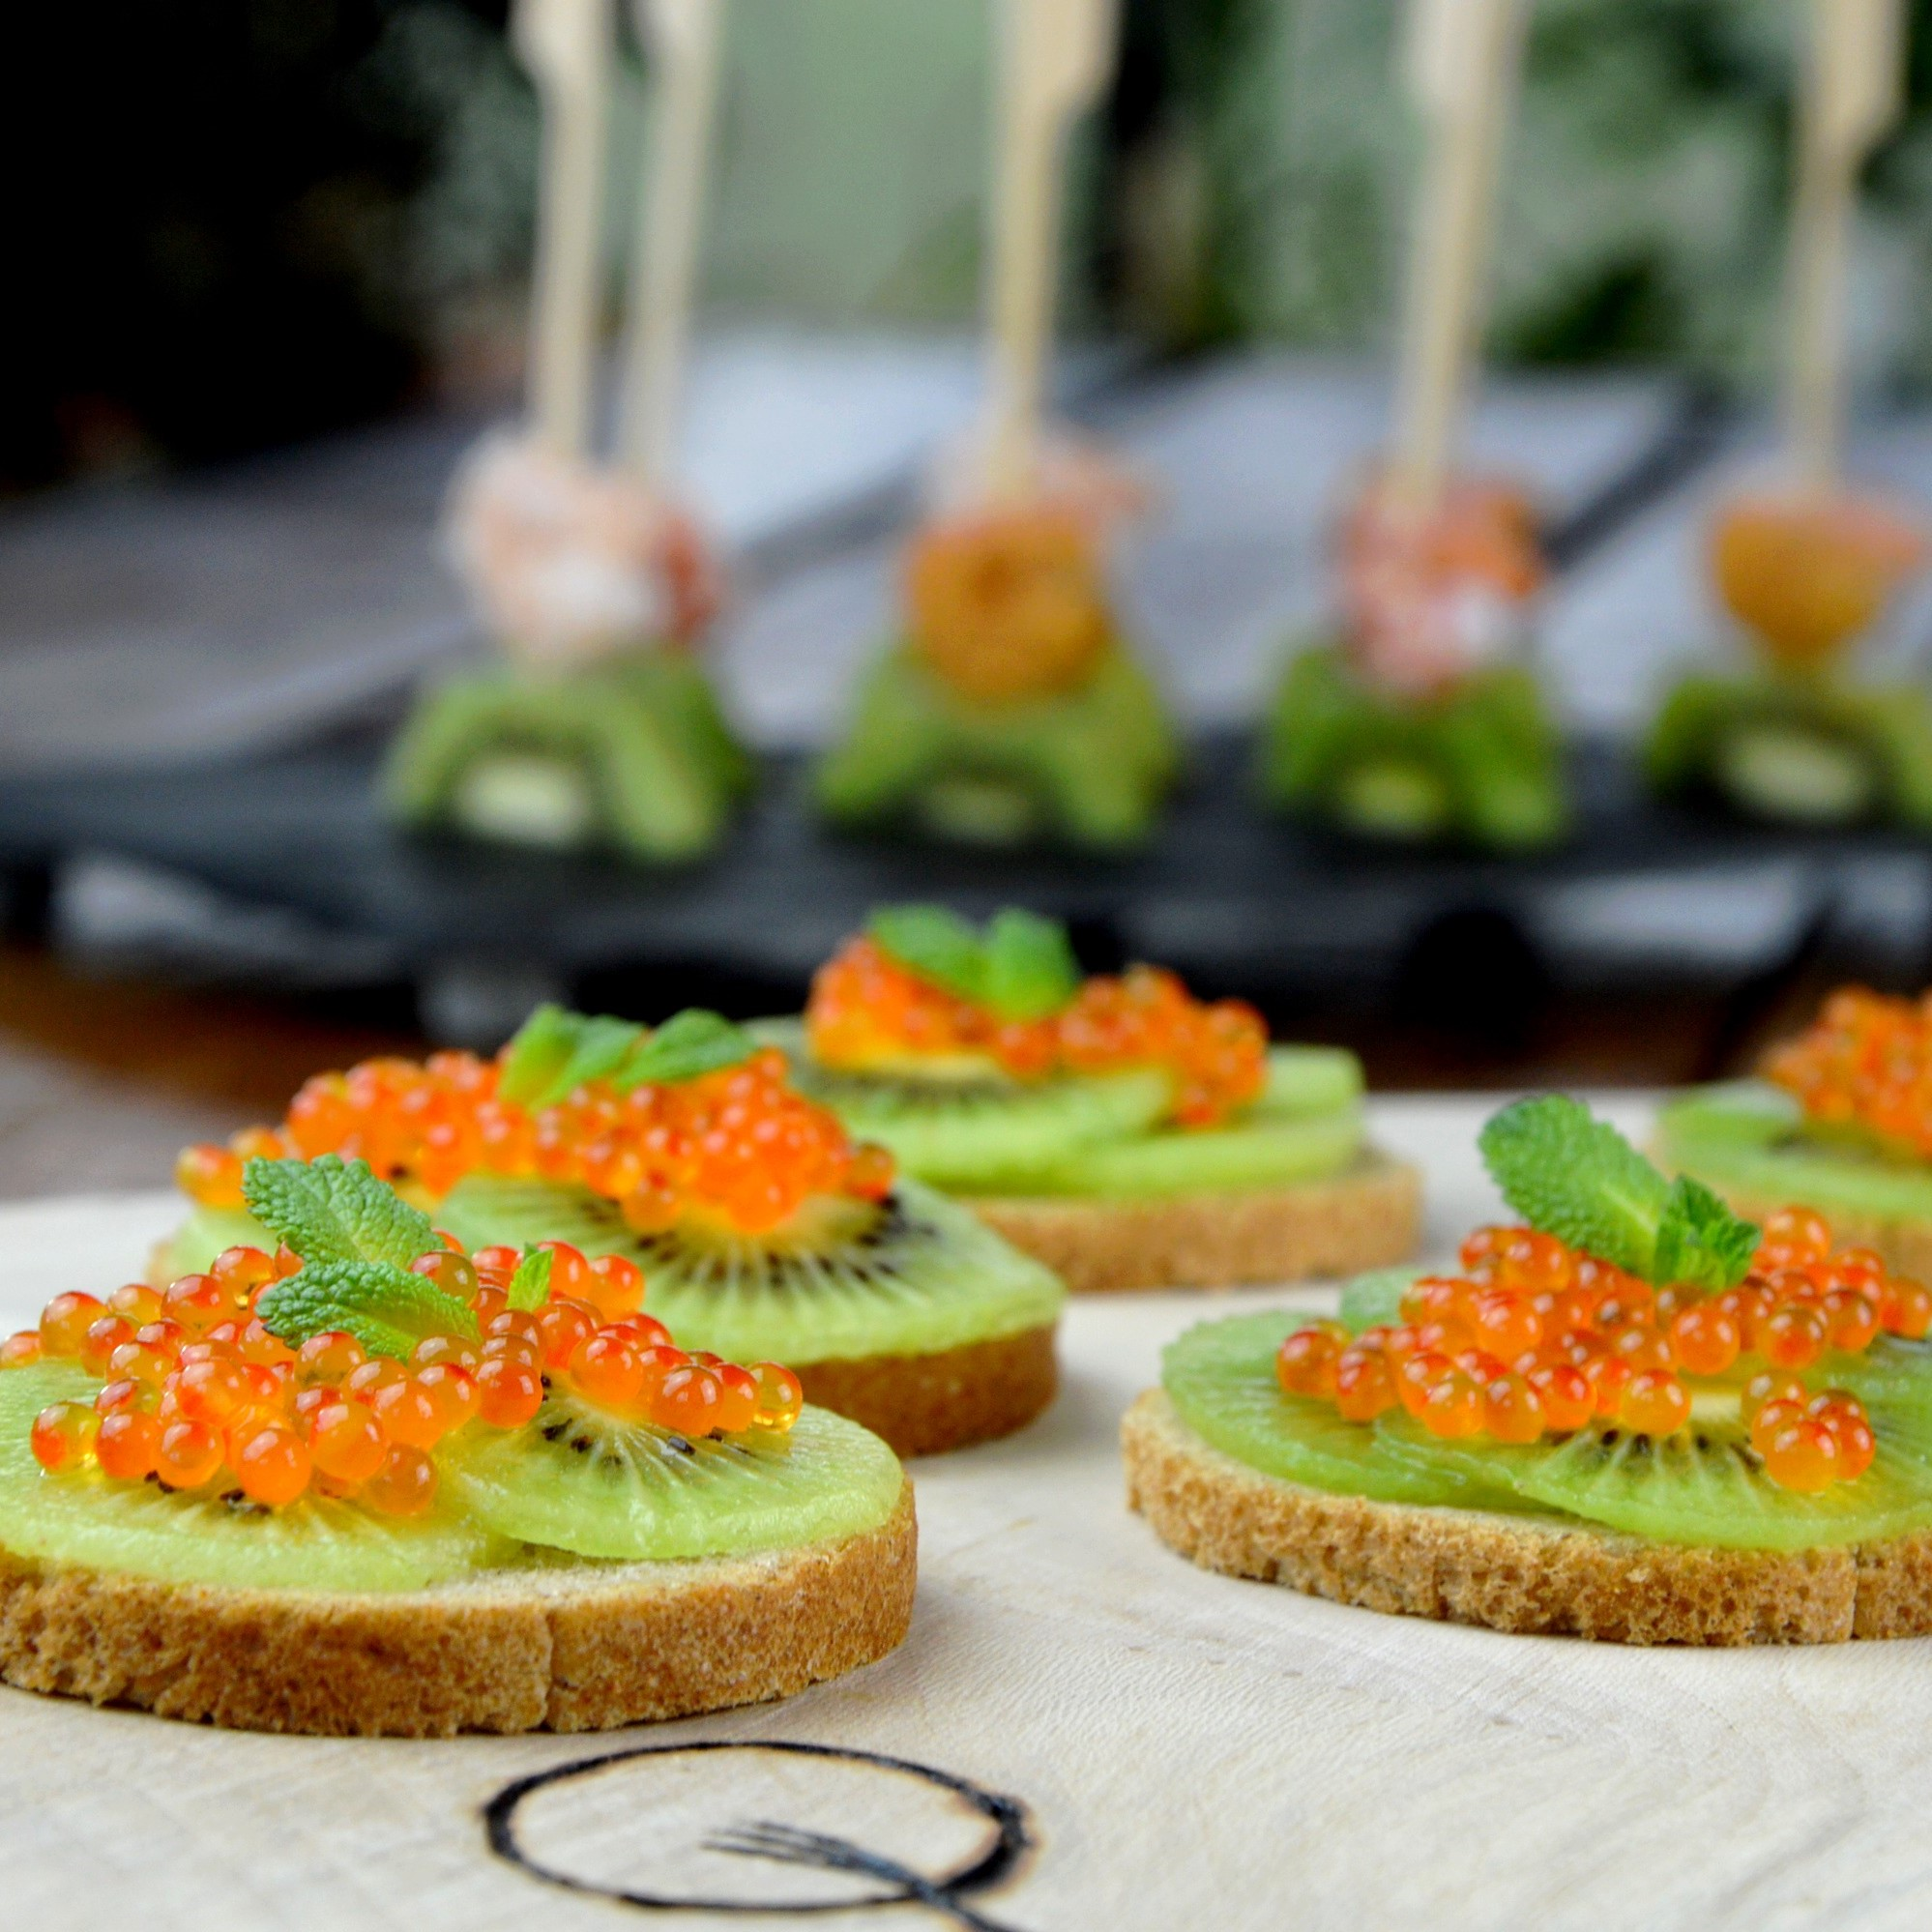 Kiwi fruits toast and trout eggs